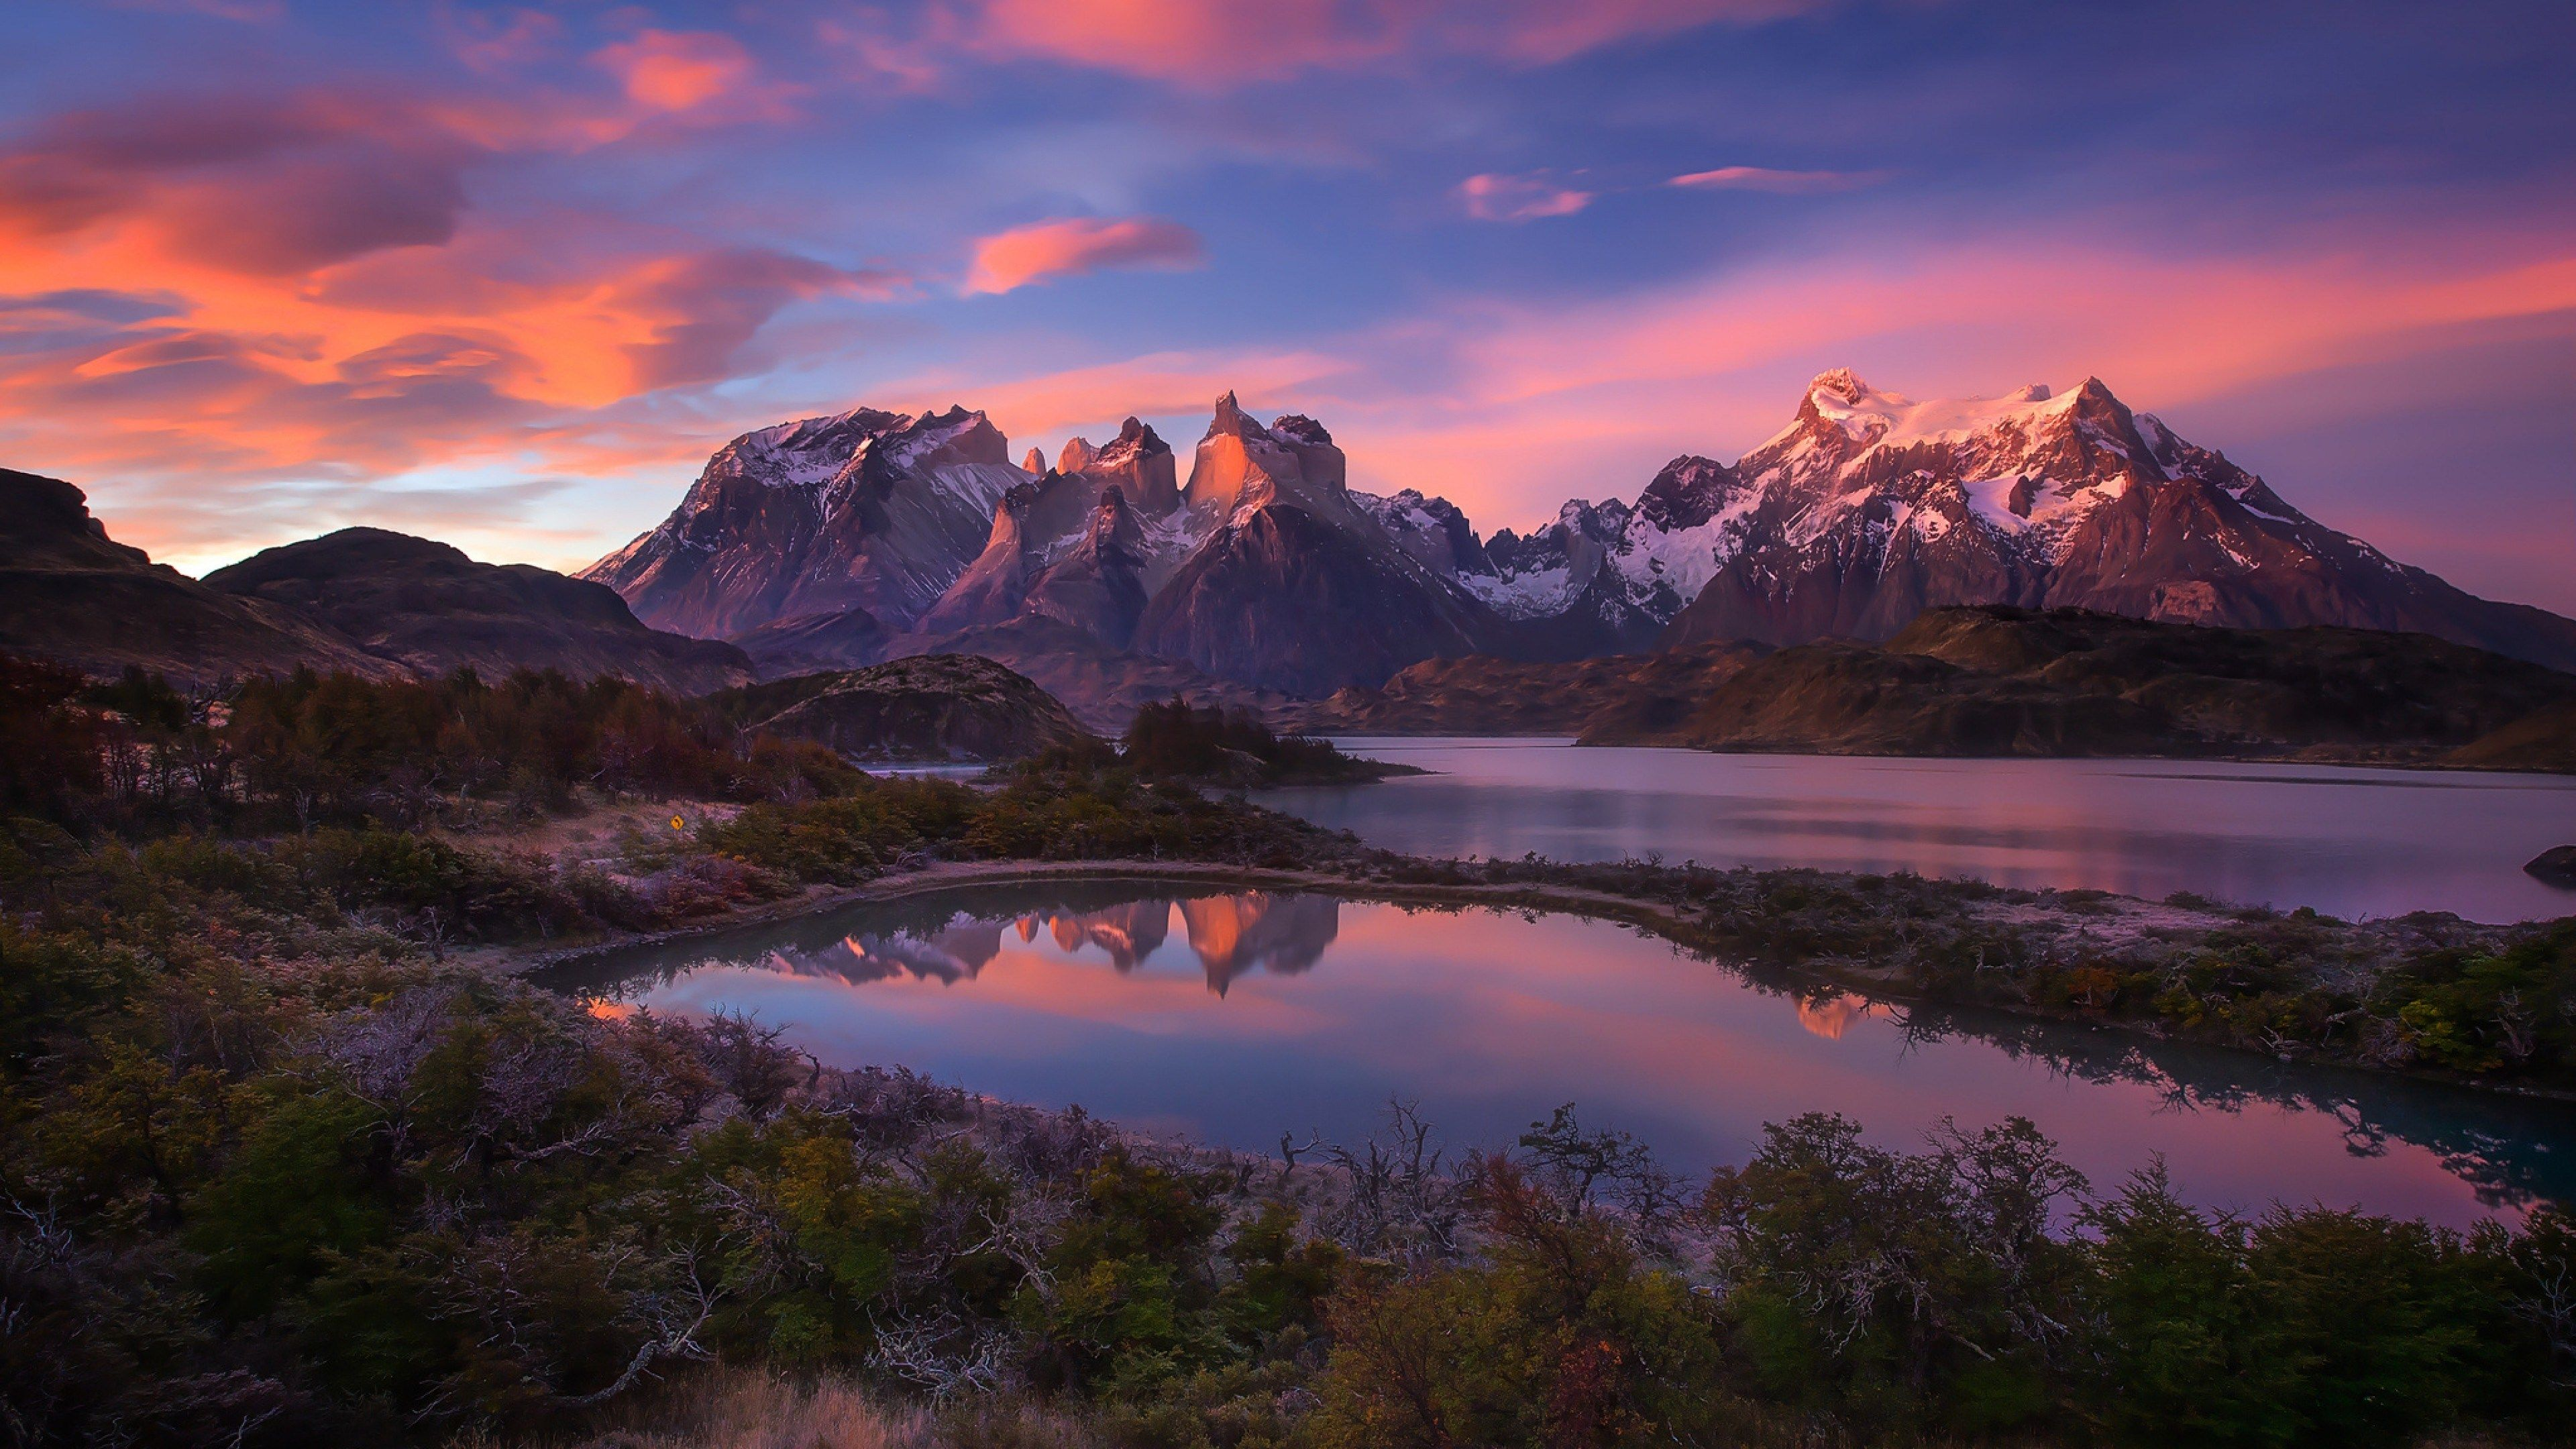 south america patagonia andes mountains lake Computer